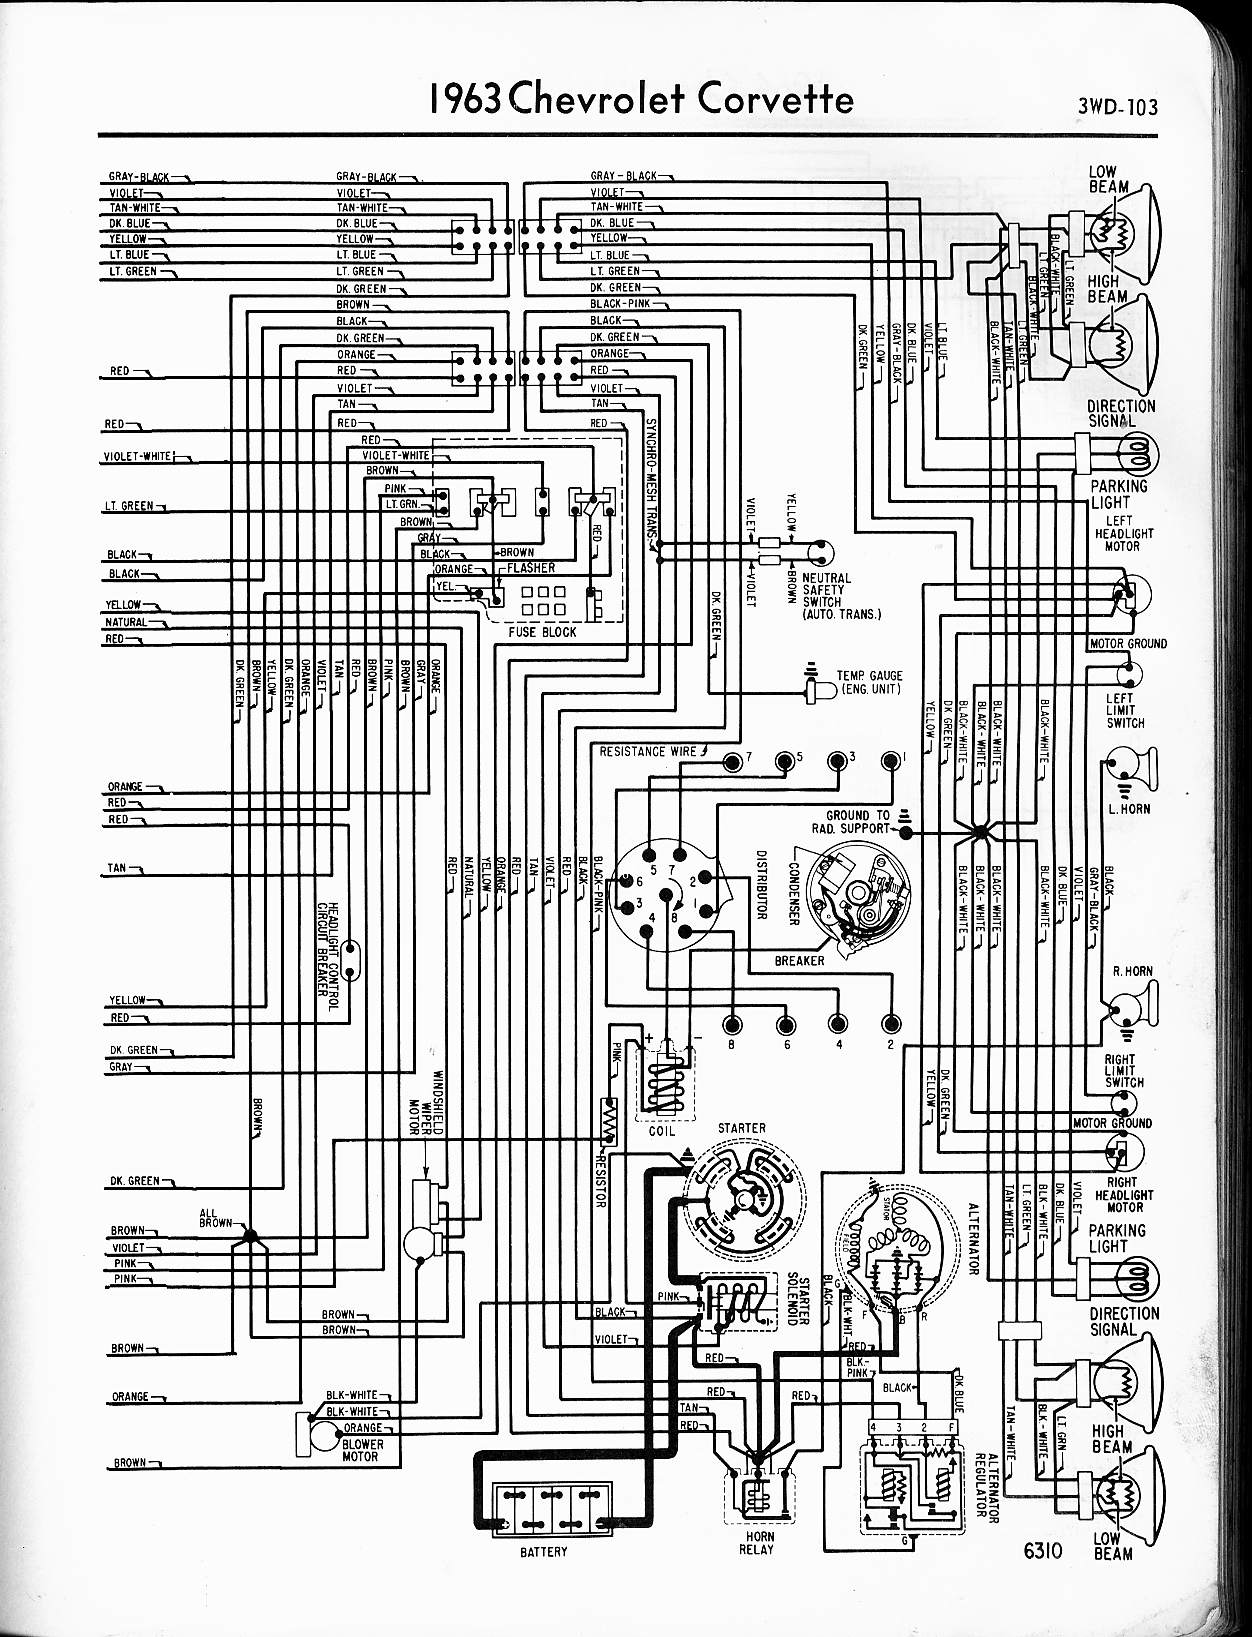 1976 Chevy Corvette Wiring Diagram - Wiring Data